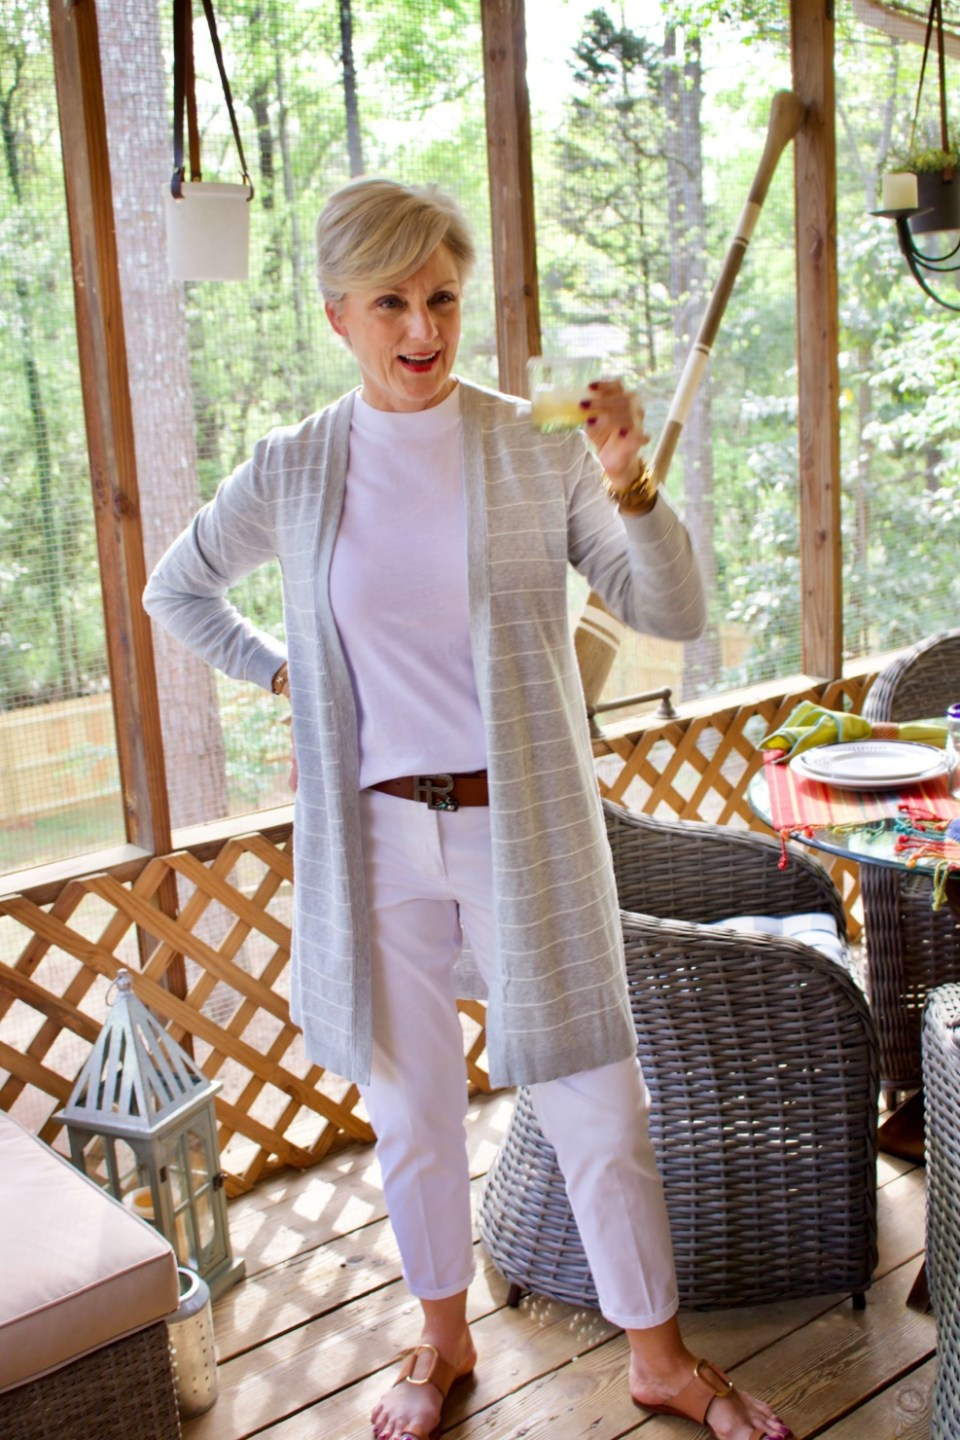 beth from Style at a Certain Age wears white girlfriend chinos, white muscle tee, gray cardigan, and brown sandals